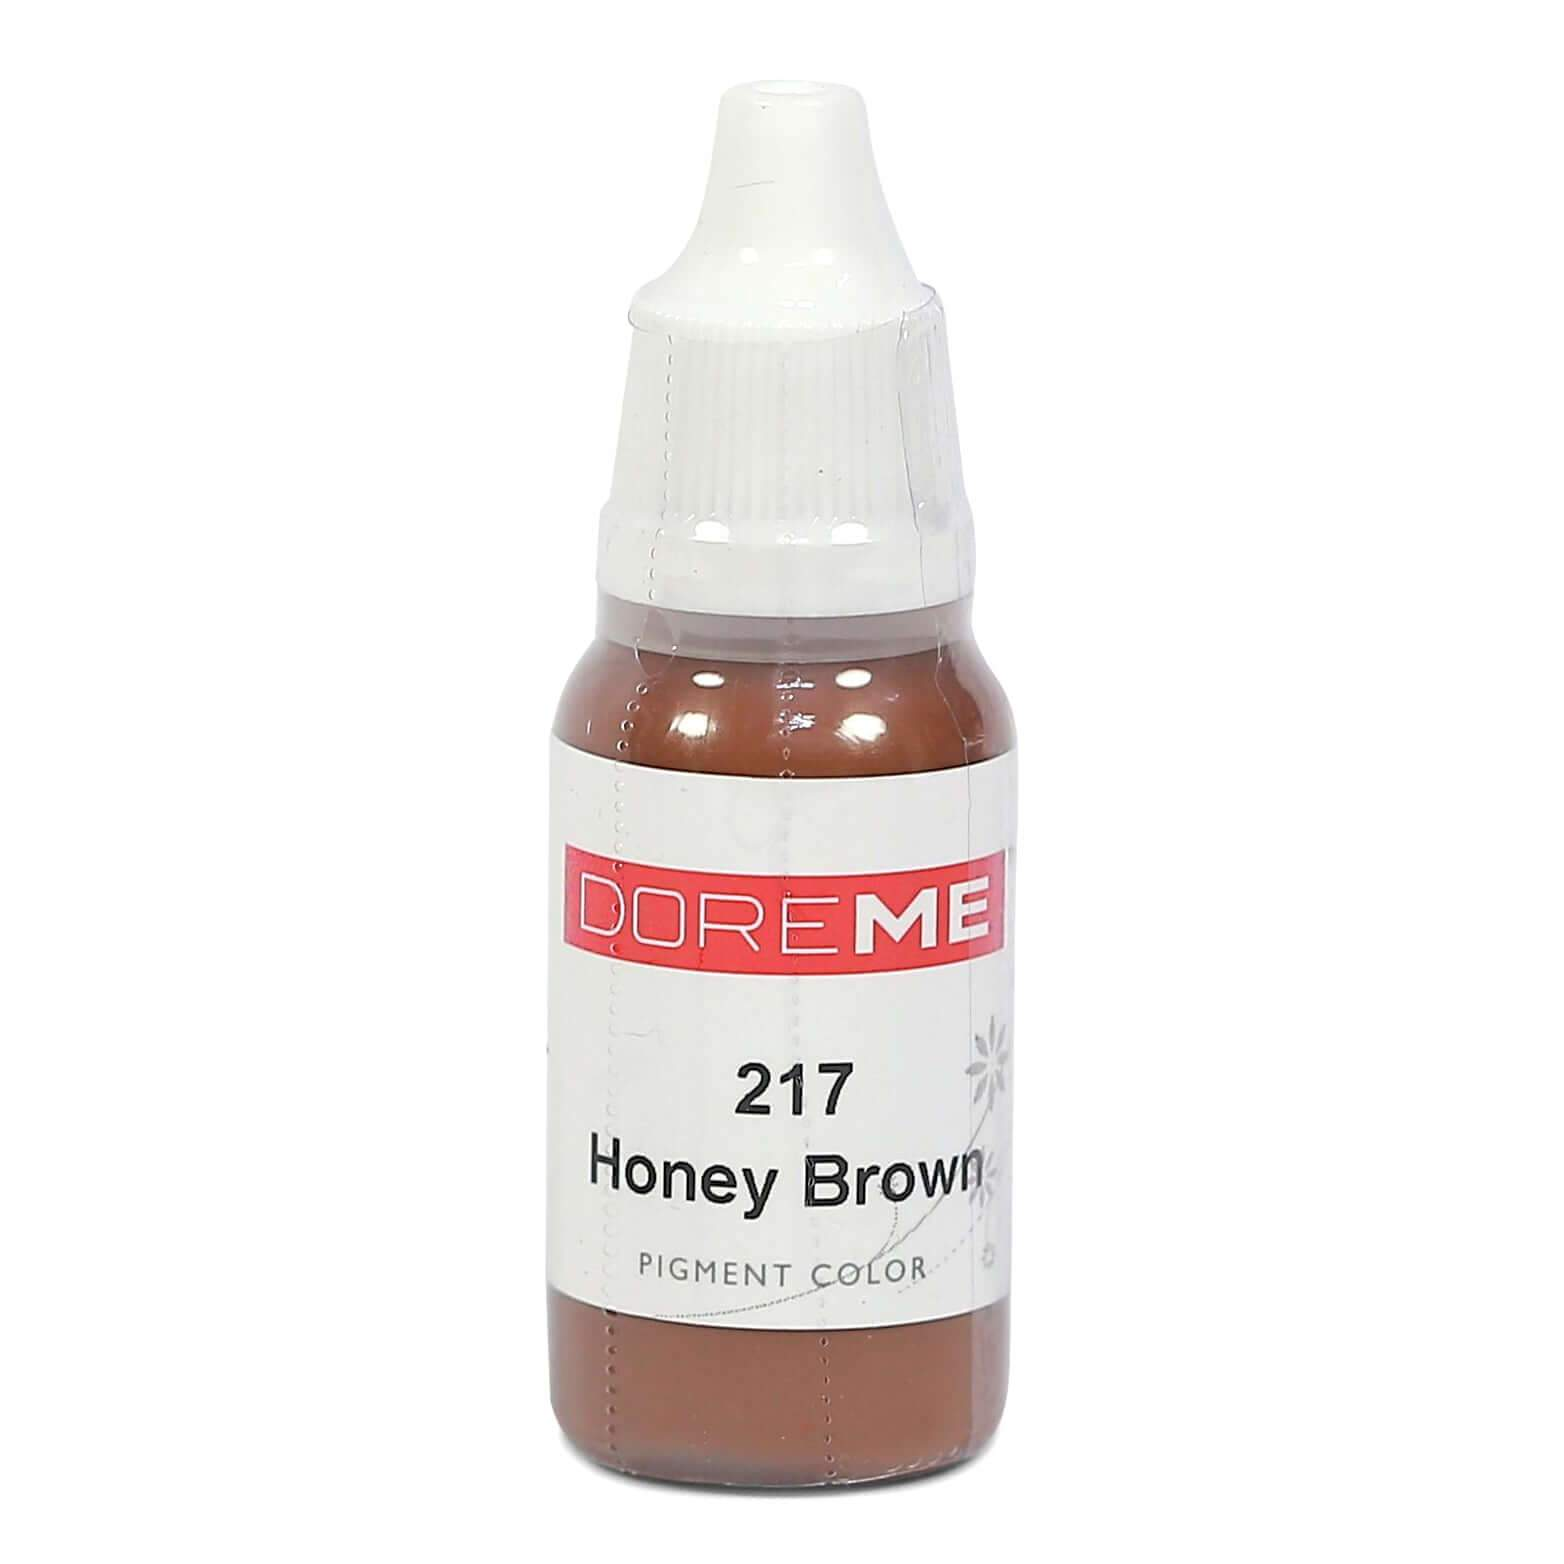 Permanent Makeup pigments Doreme Micropigmentation Eyebrow, Eyeliner, Lip Colours 217 Honey Brown (n) - Beautiful Ink UK trade and wholesale supplier